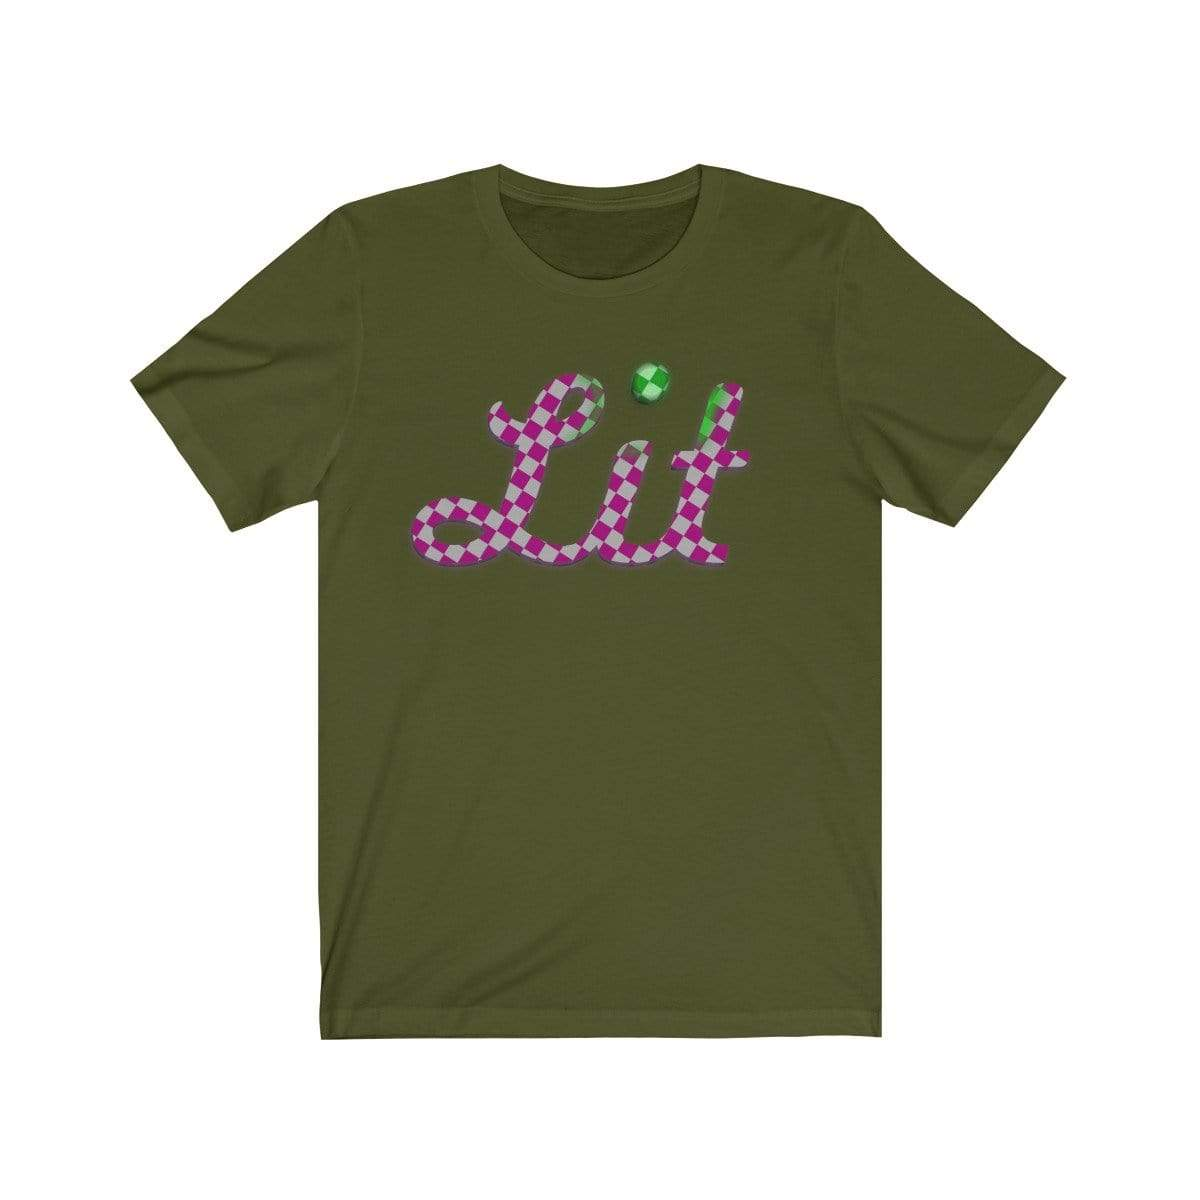 Plumskum T-Shirt Olive / S Pink Checkered Lit T-shirt